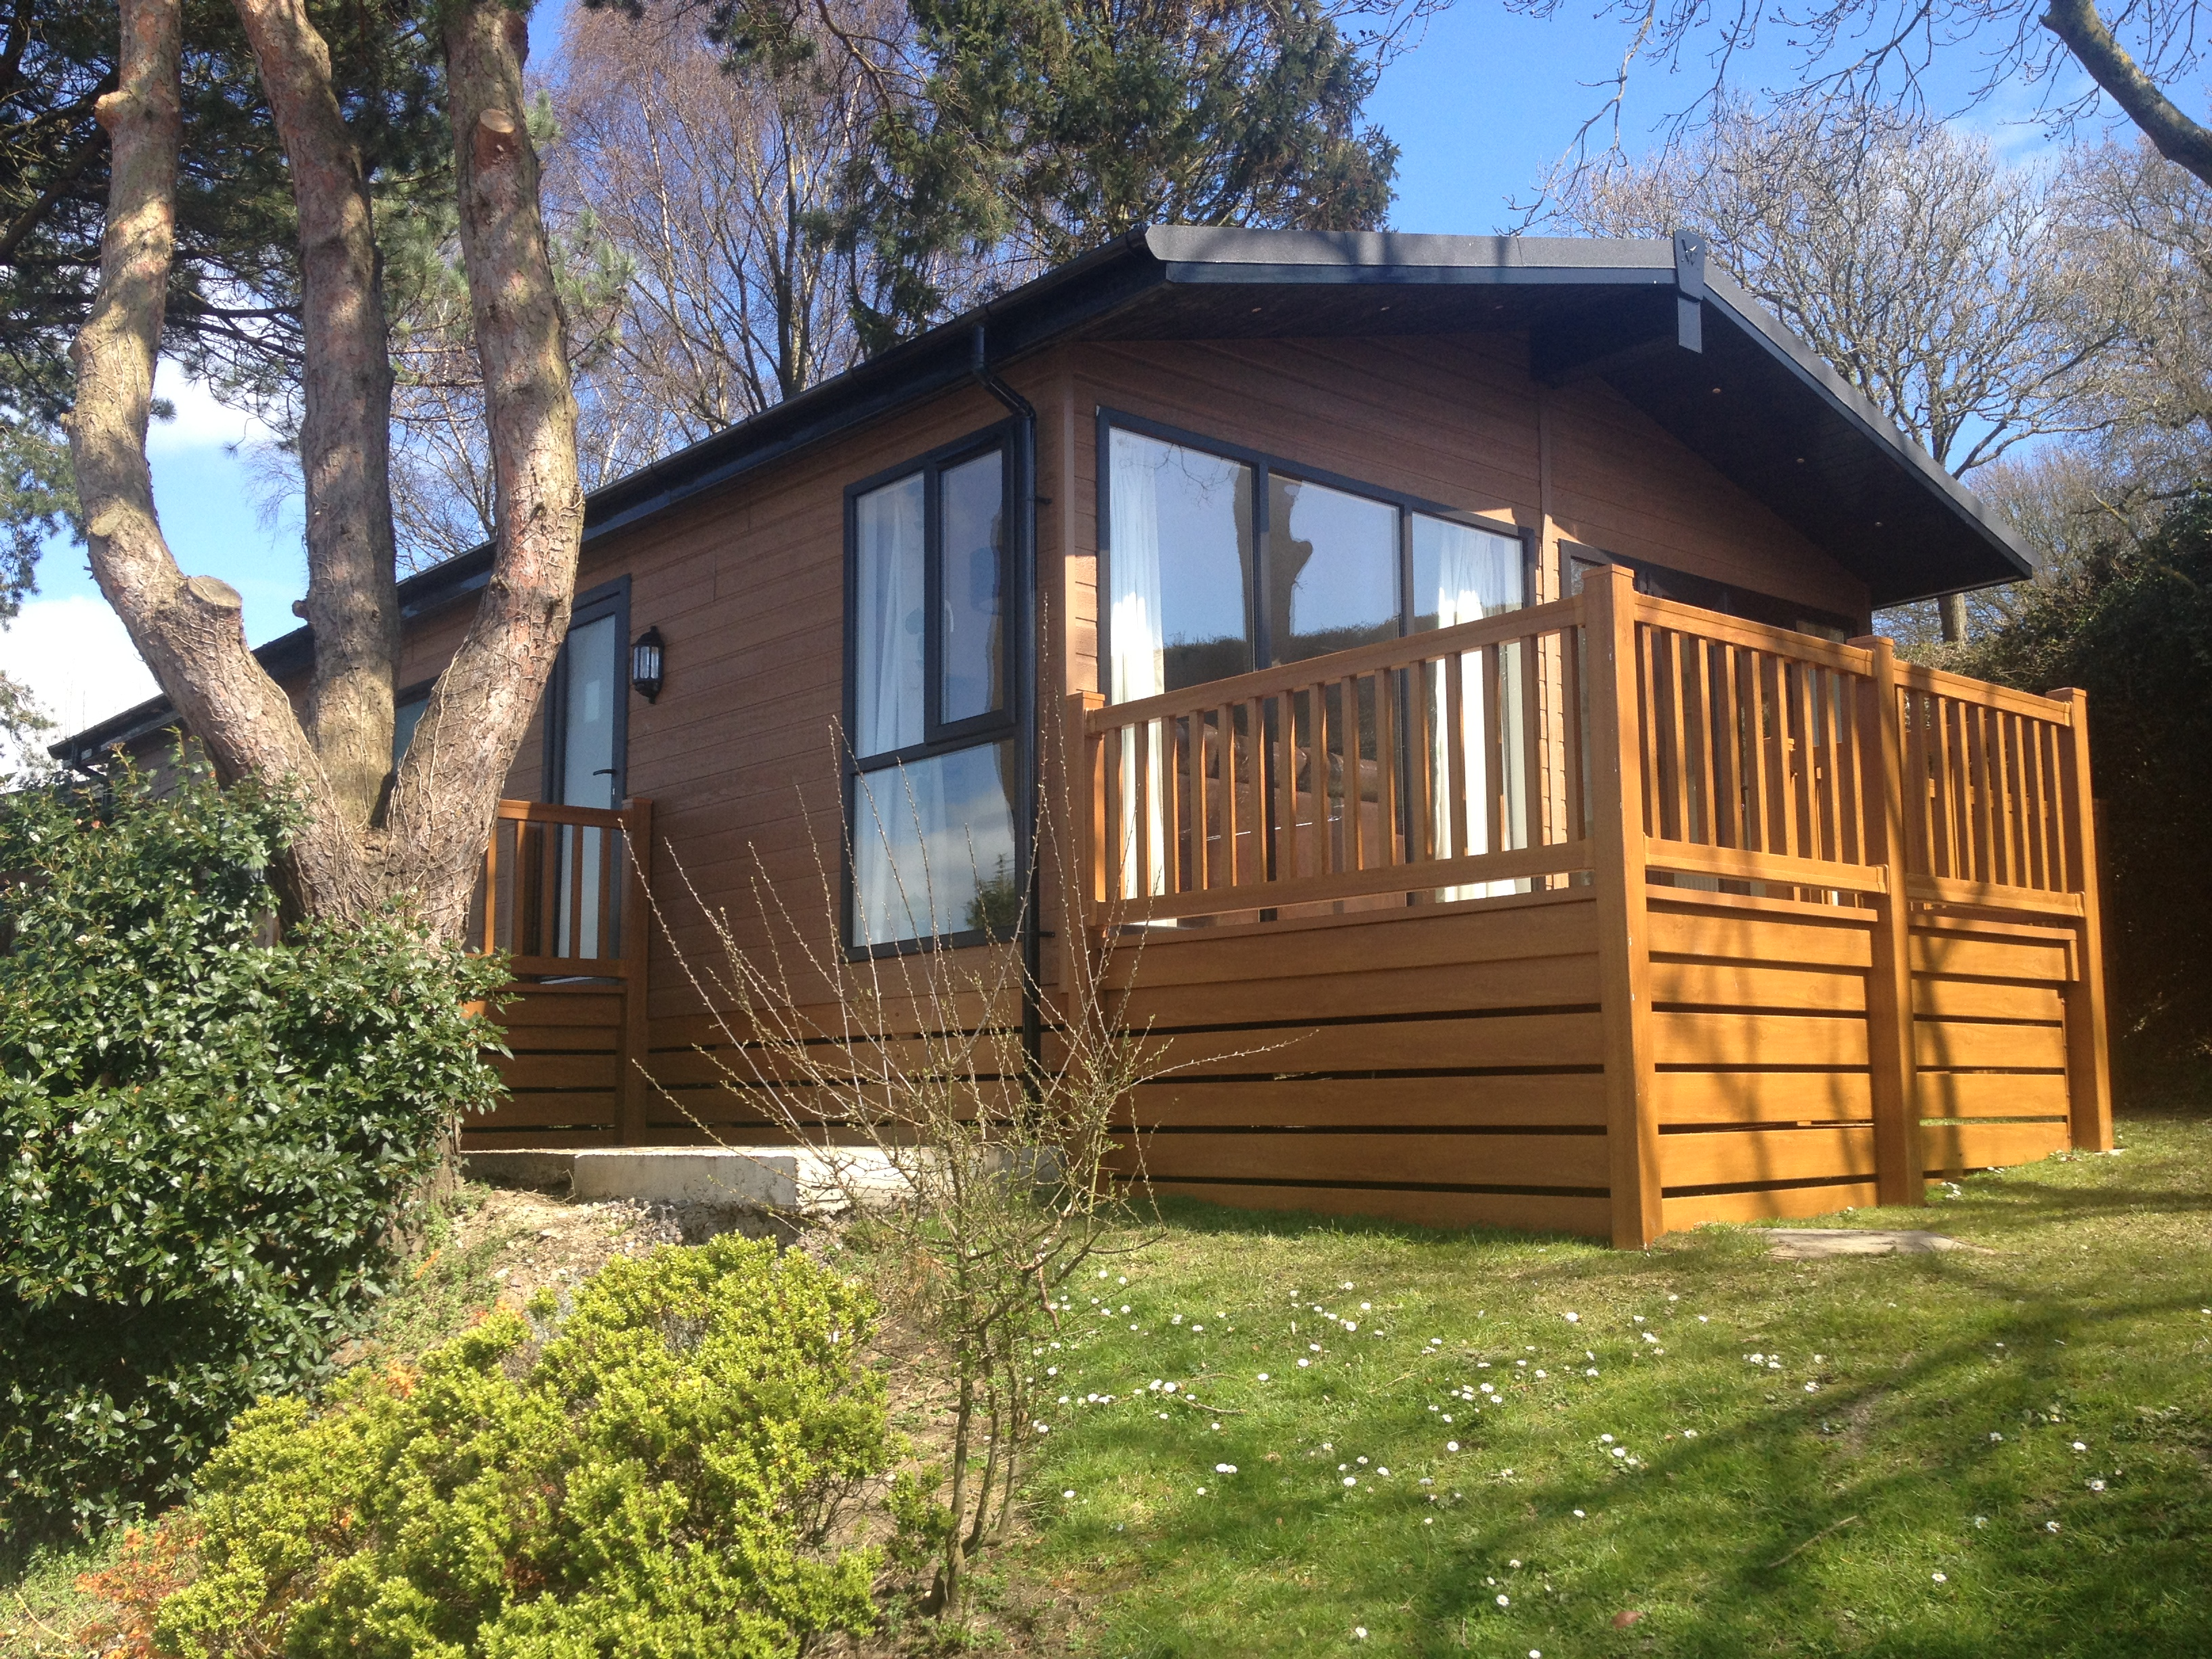 Holiday Lodges in Dorset